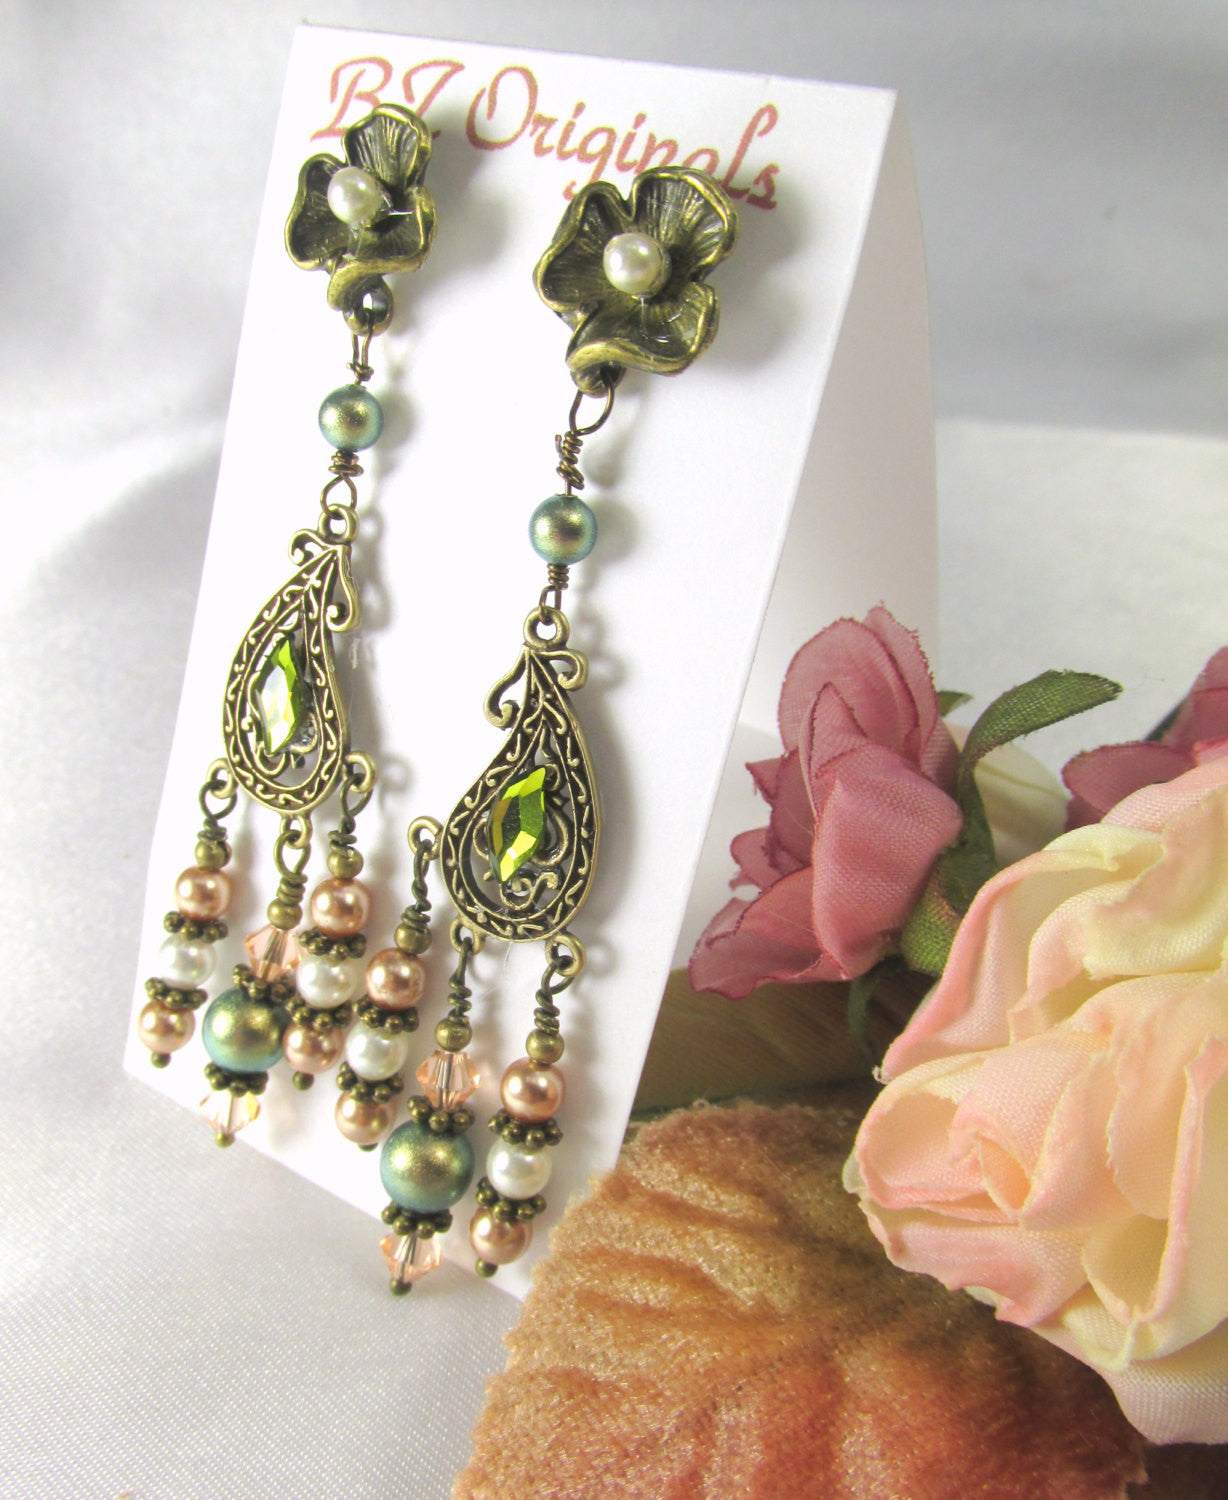 Antique Brass Post Chandelier Earrings in Olive Green, Ivory, Pearls and Light Peach Swarovski - Odyssey Creations